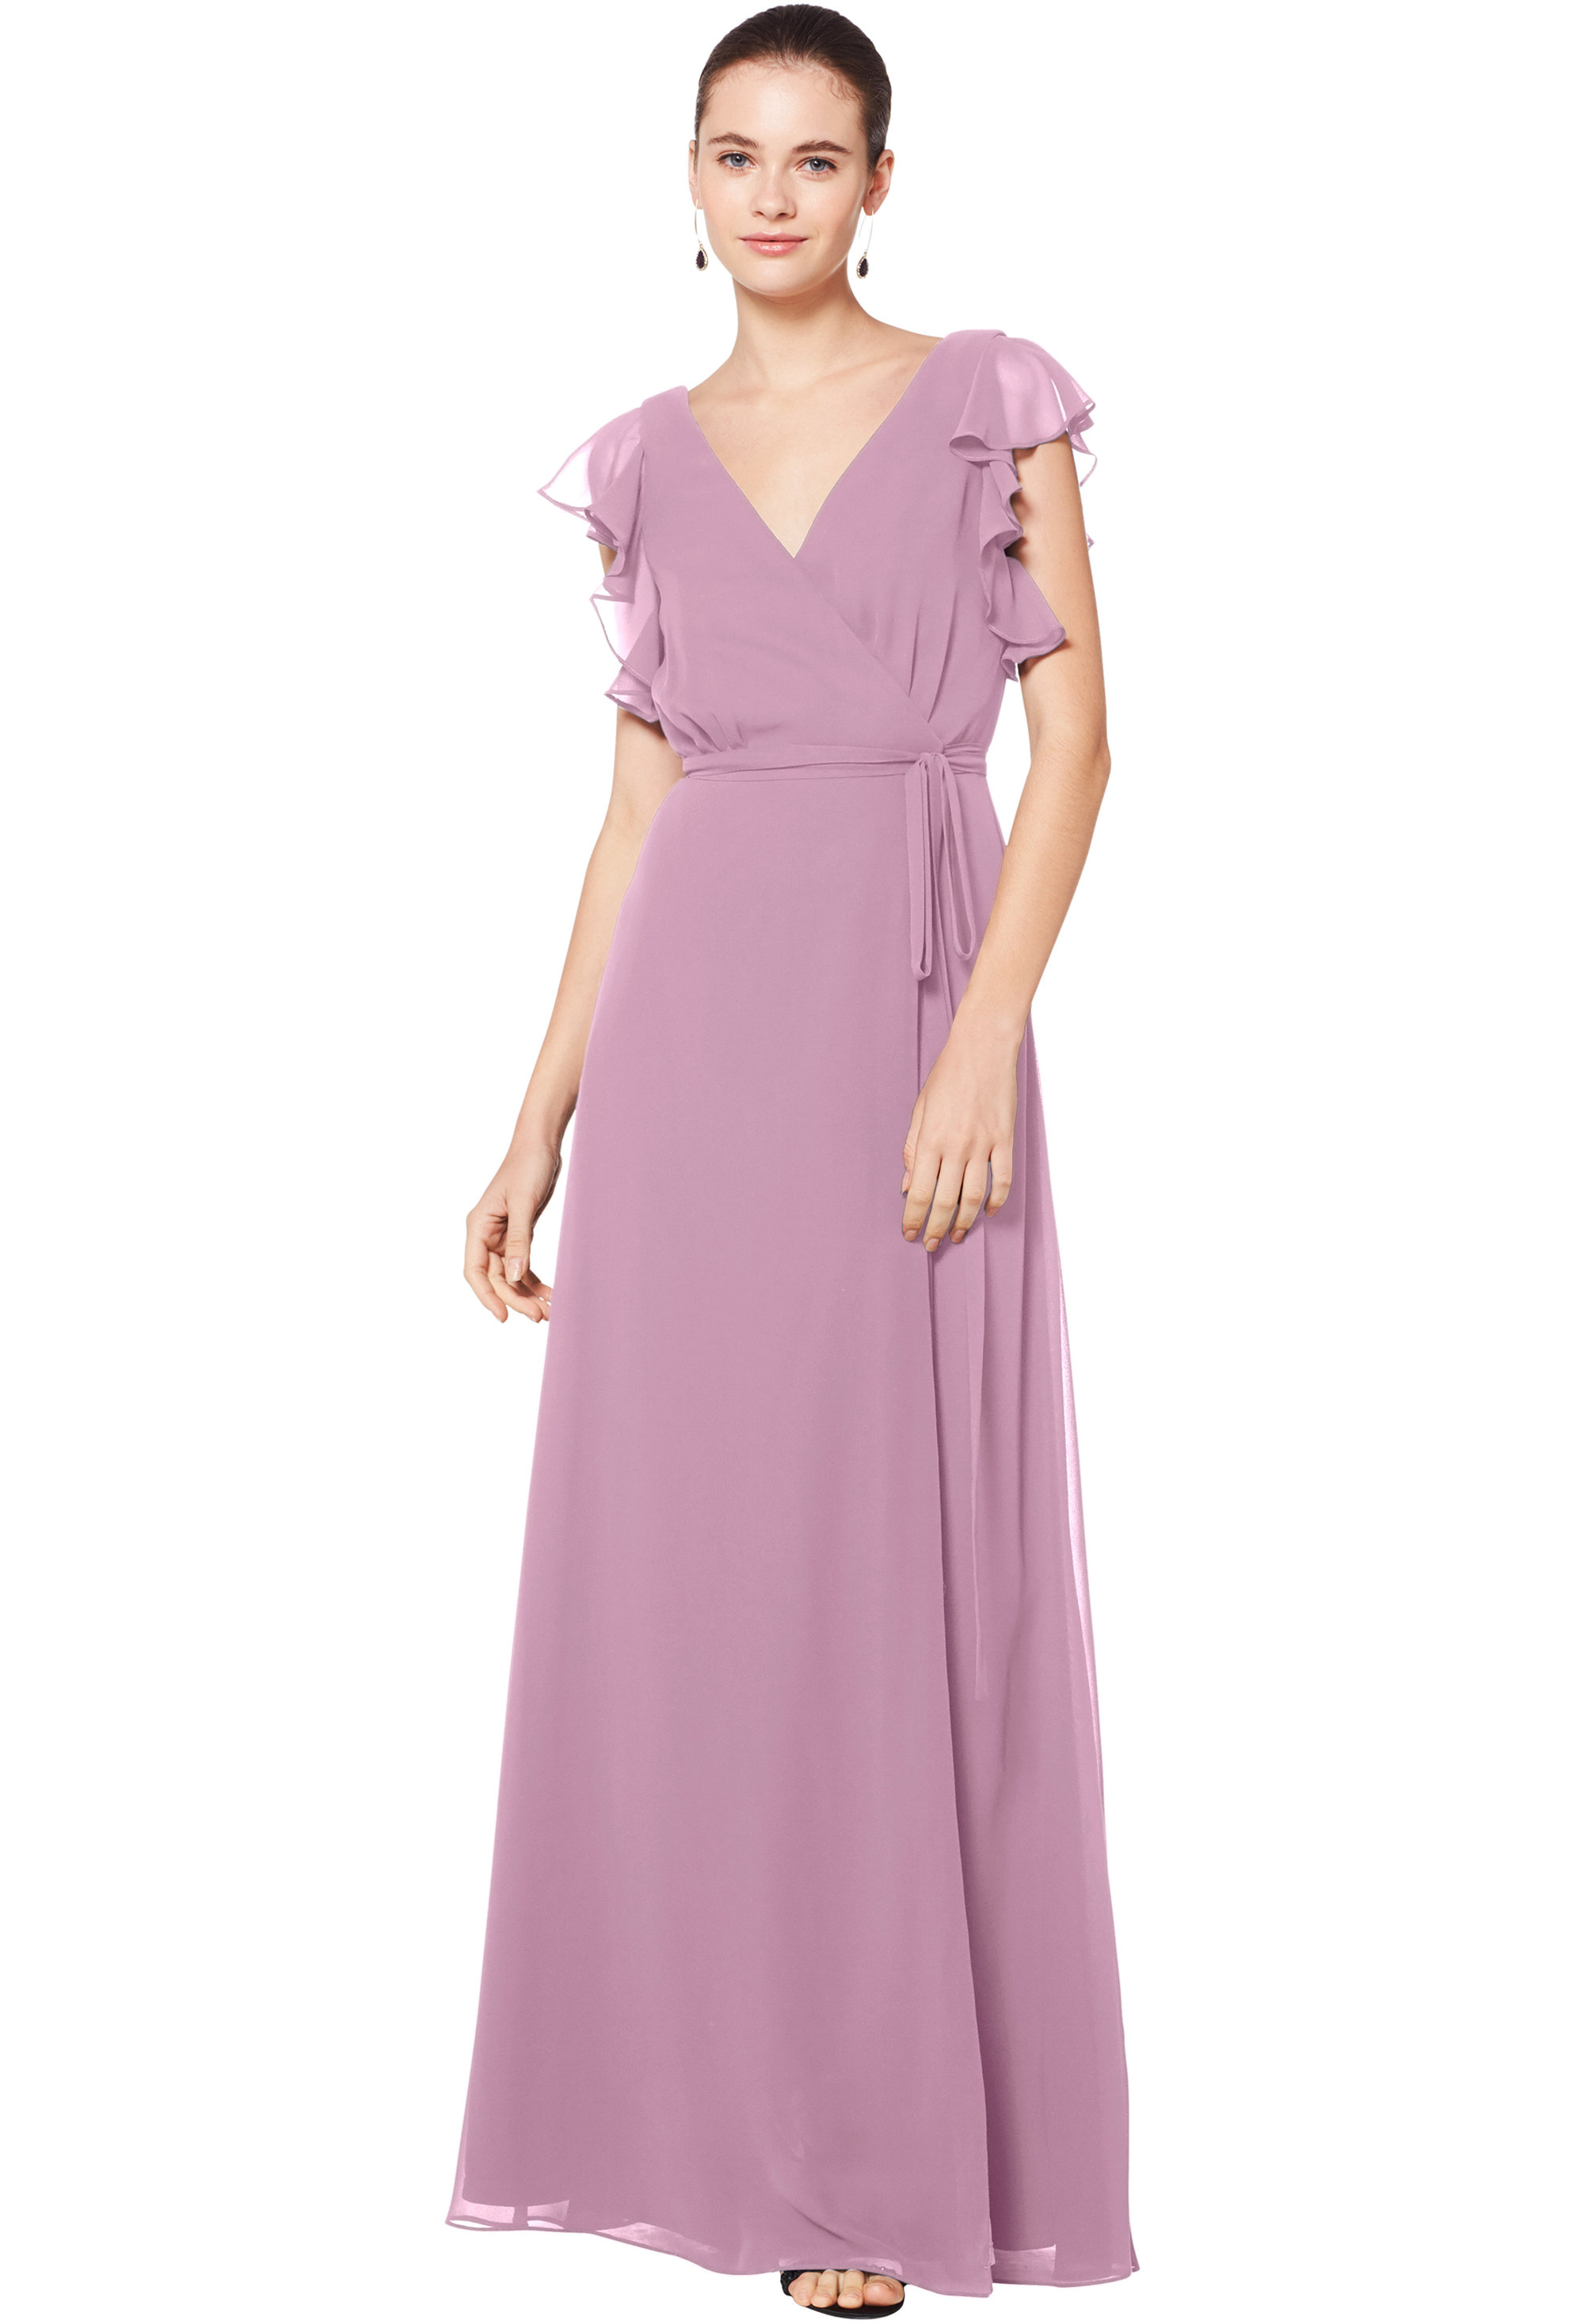 Bill Levkoff WISTERIA Chiffon Sleeveless A-line gown, $180.00 Front